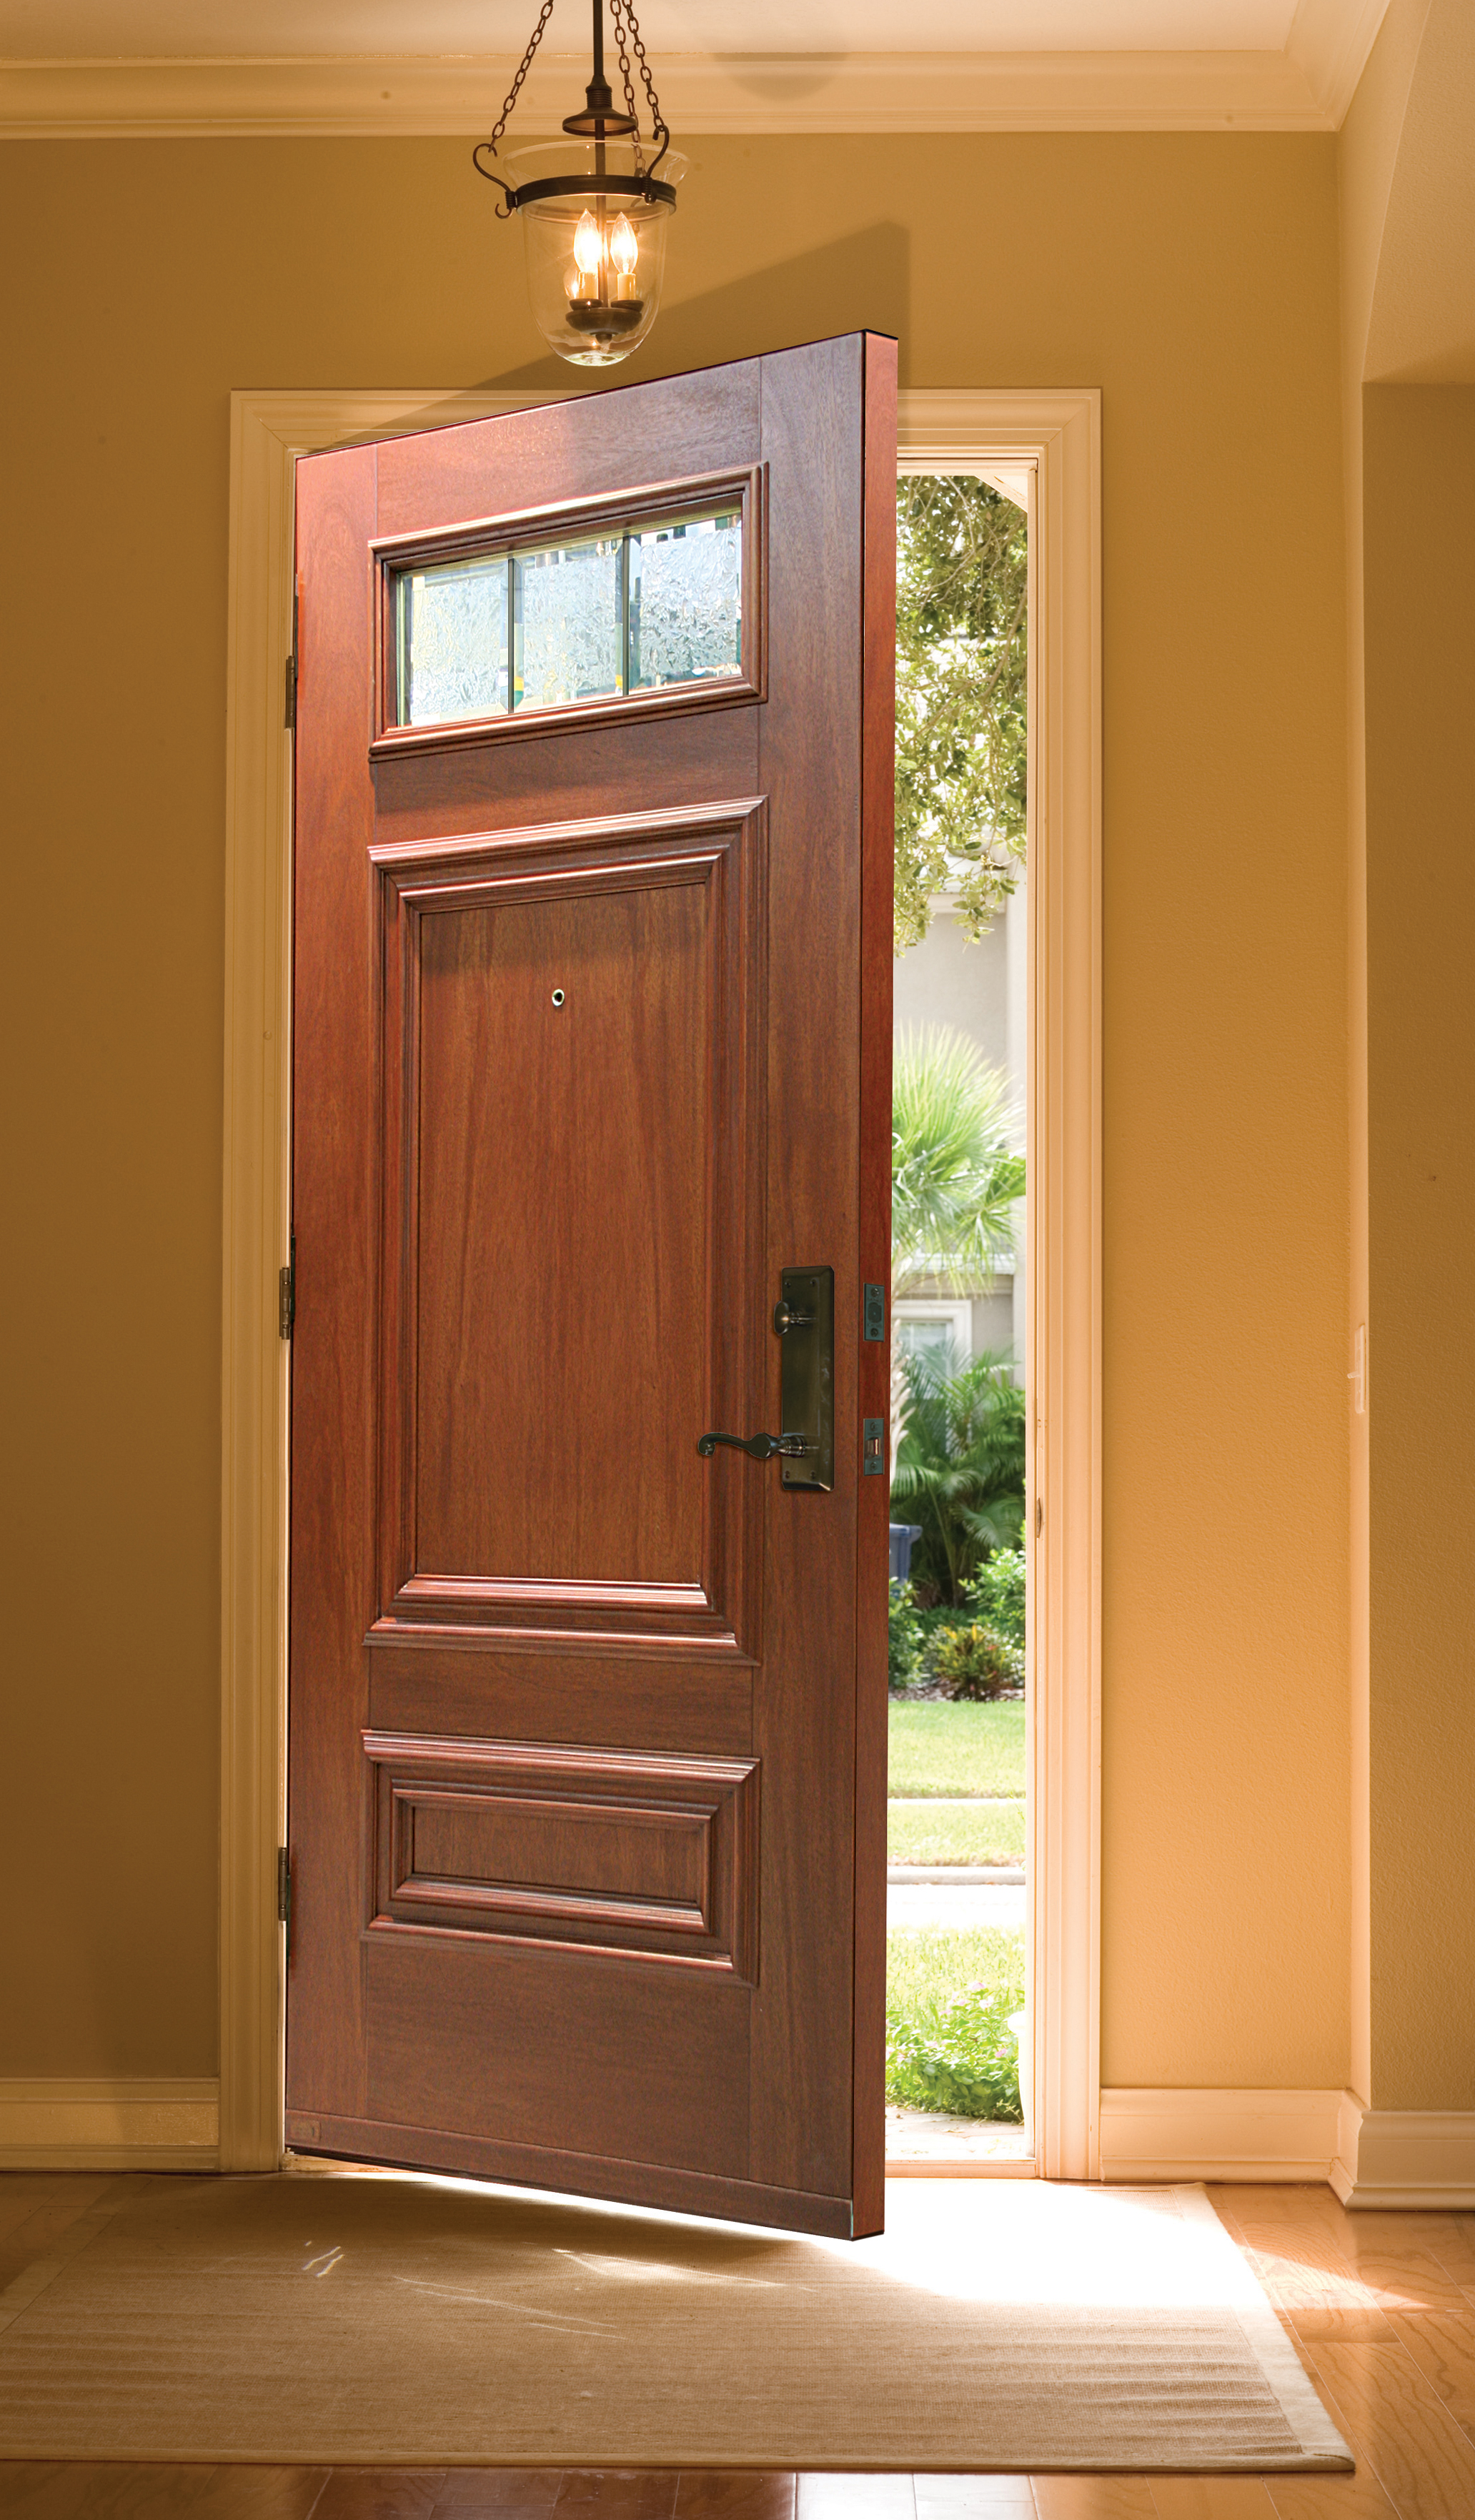 Porte simple avec finition de bois int rieure cerisier for Porte interieur